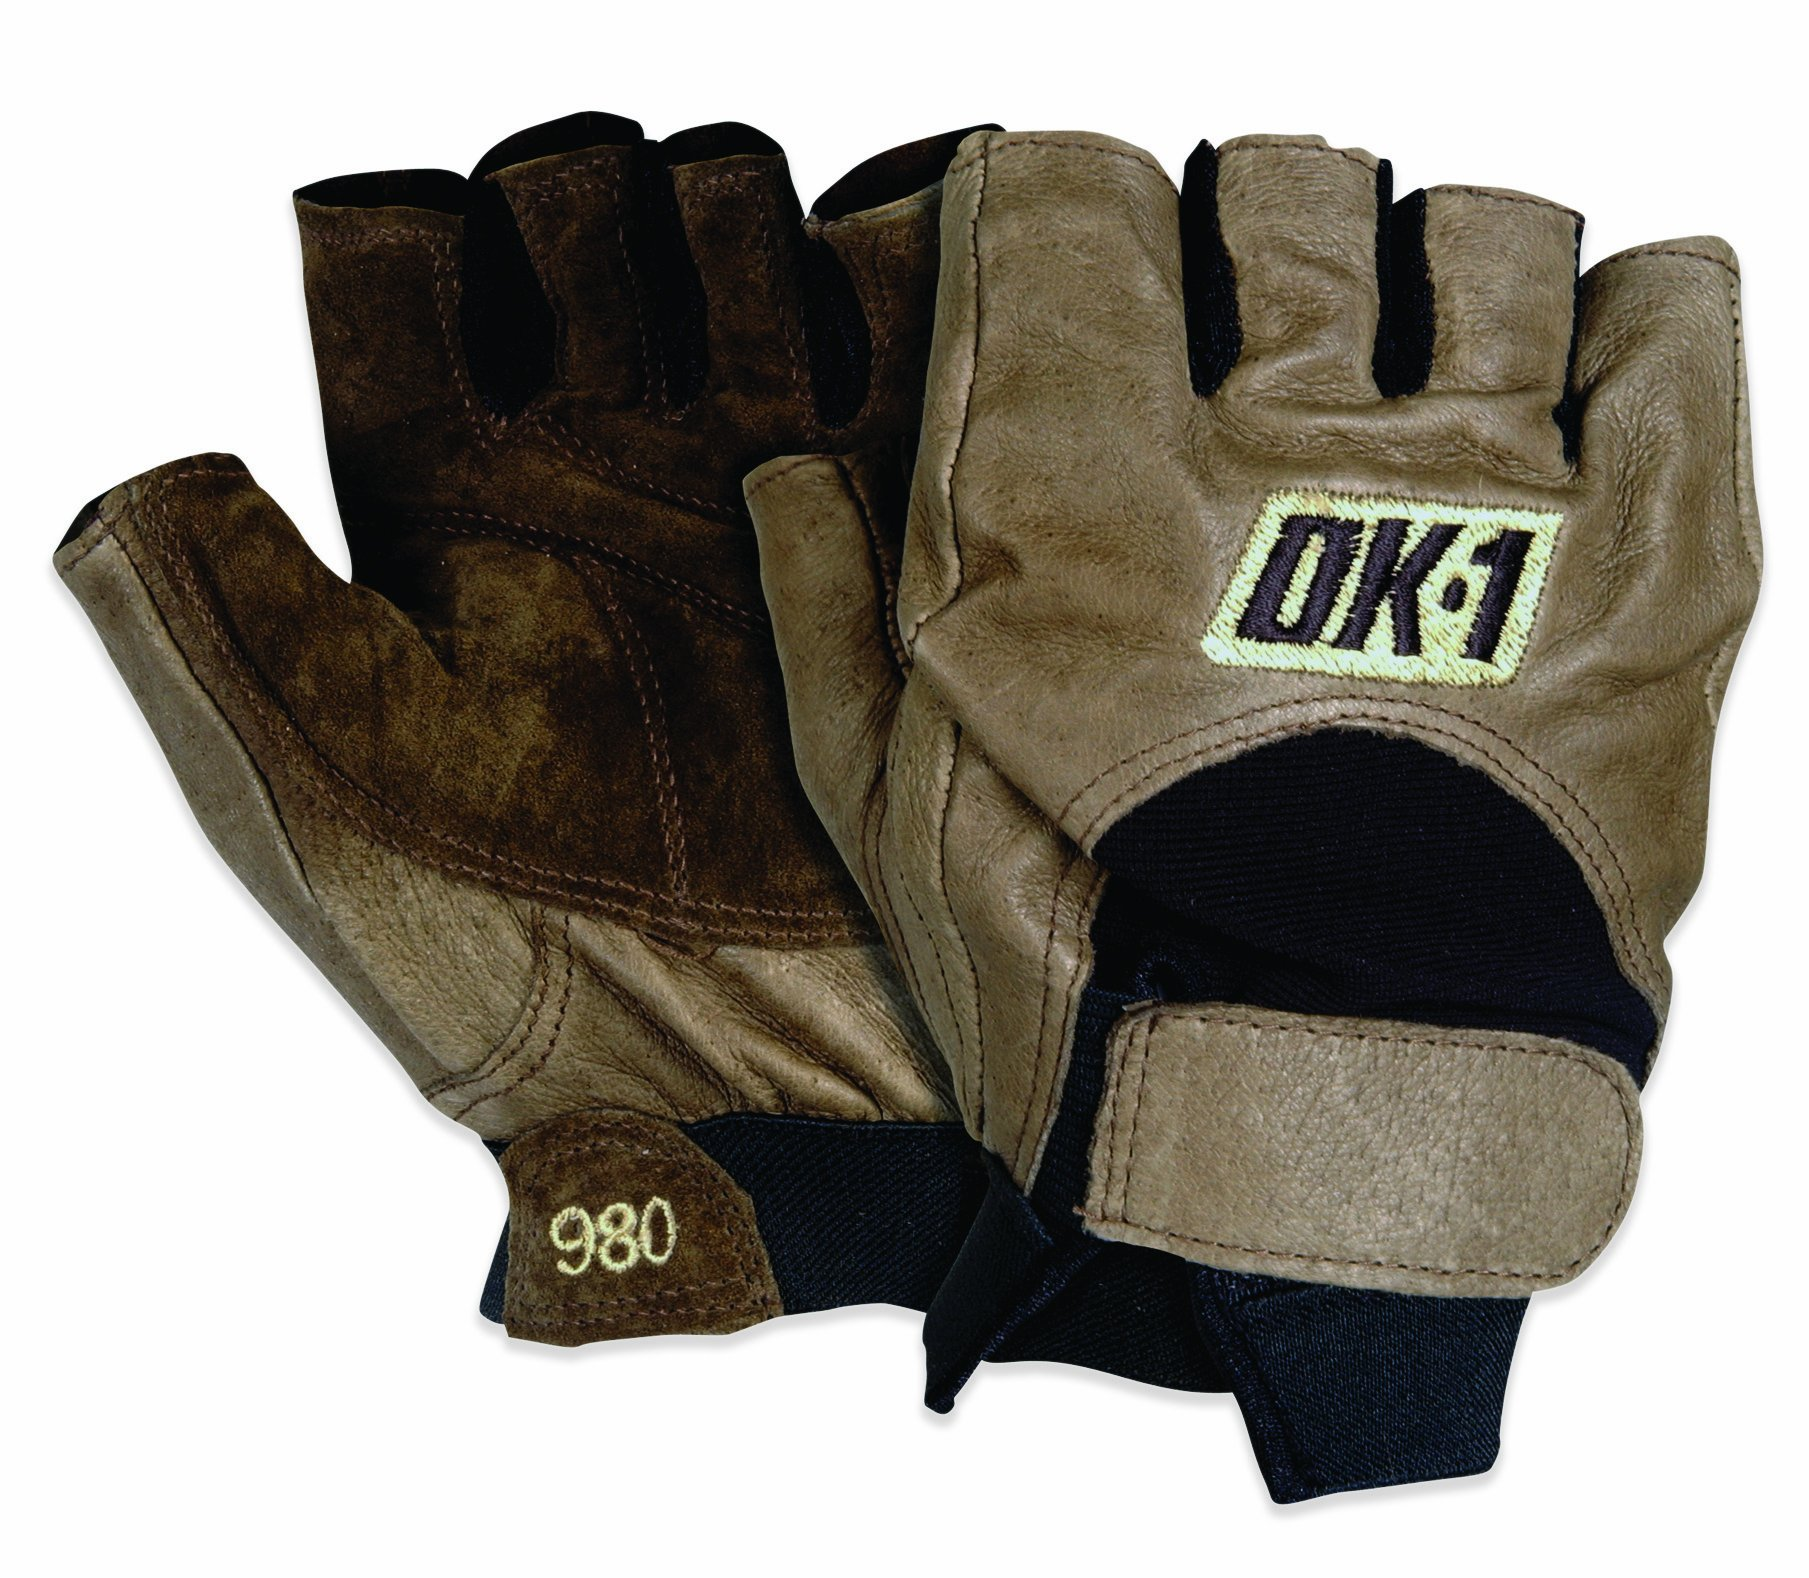 OK1 GLV1027L Half-Finger Impact Gloves, Large, Brown (Case of 4) by Unknown (Image #1)